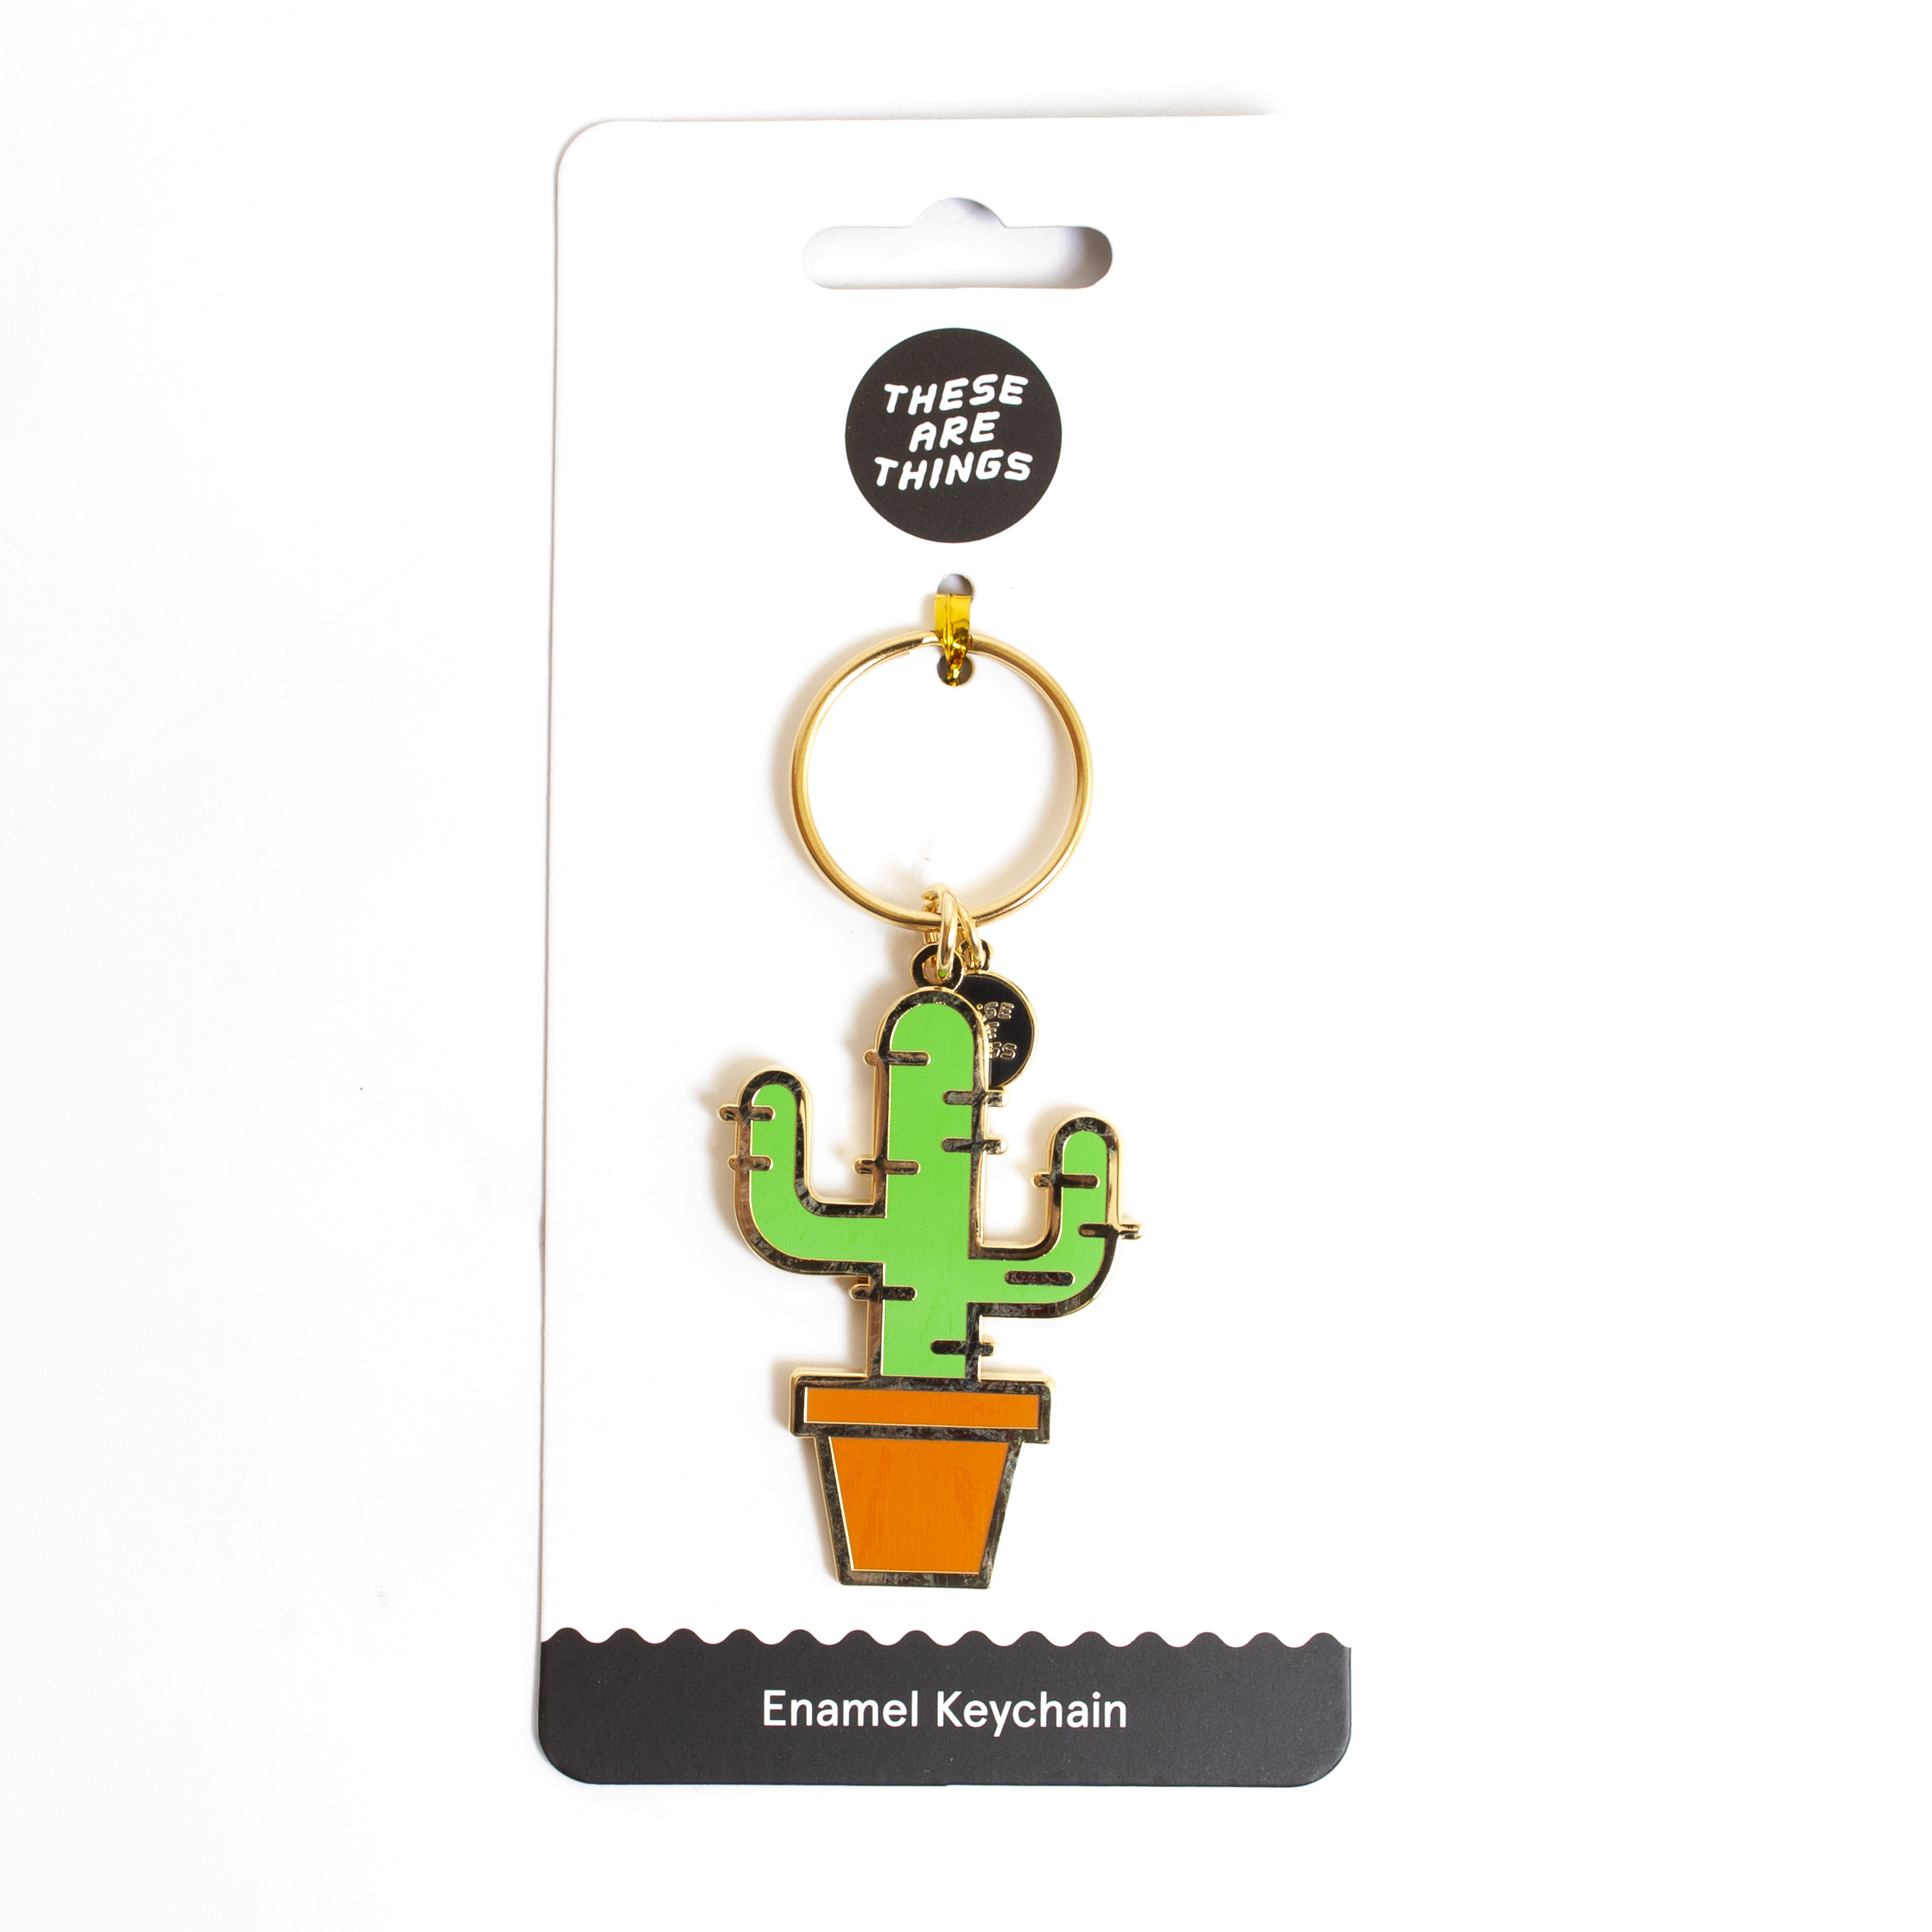 These Are Things, Enamel, Keychain, Novelty